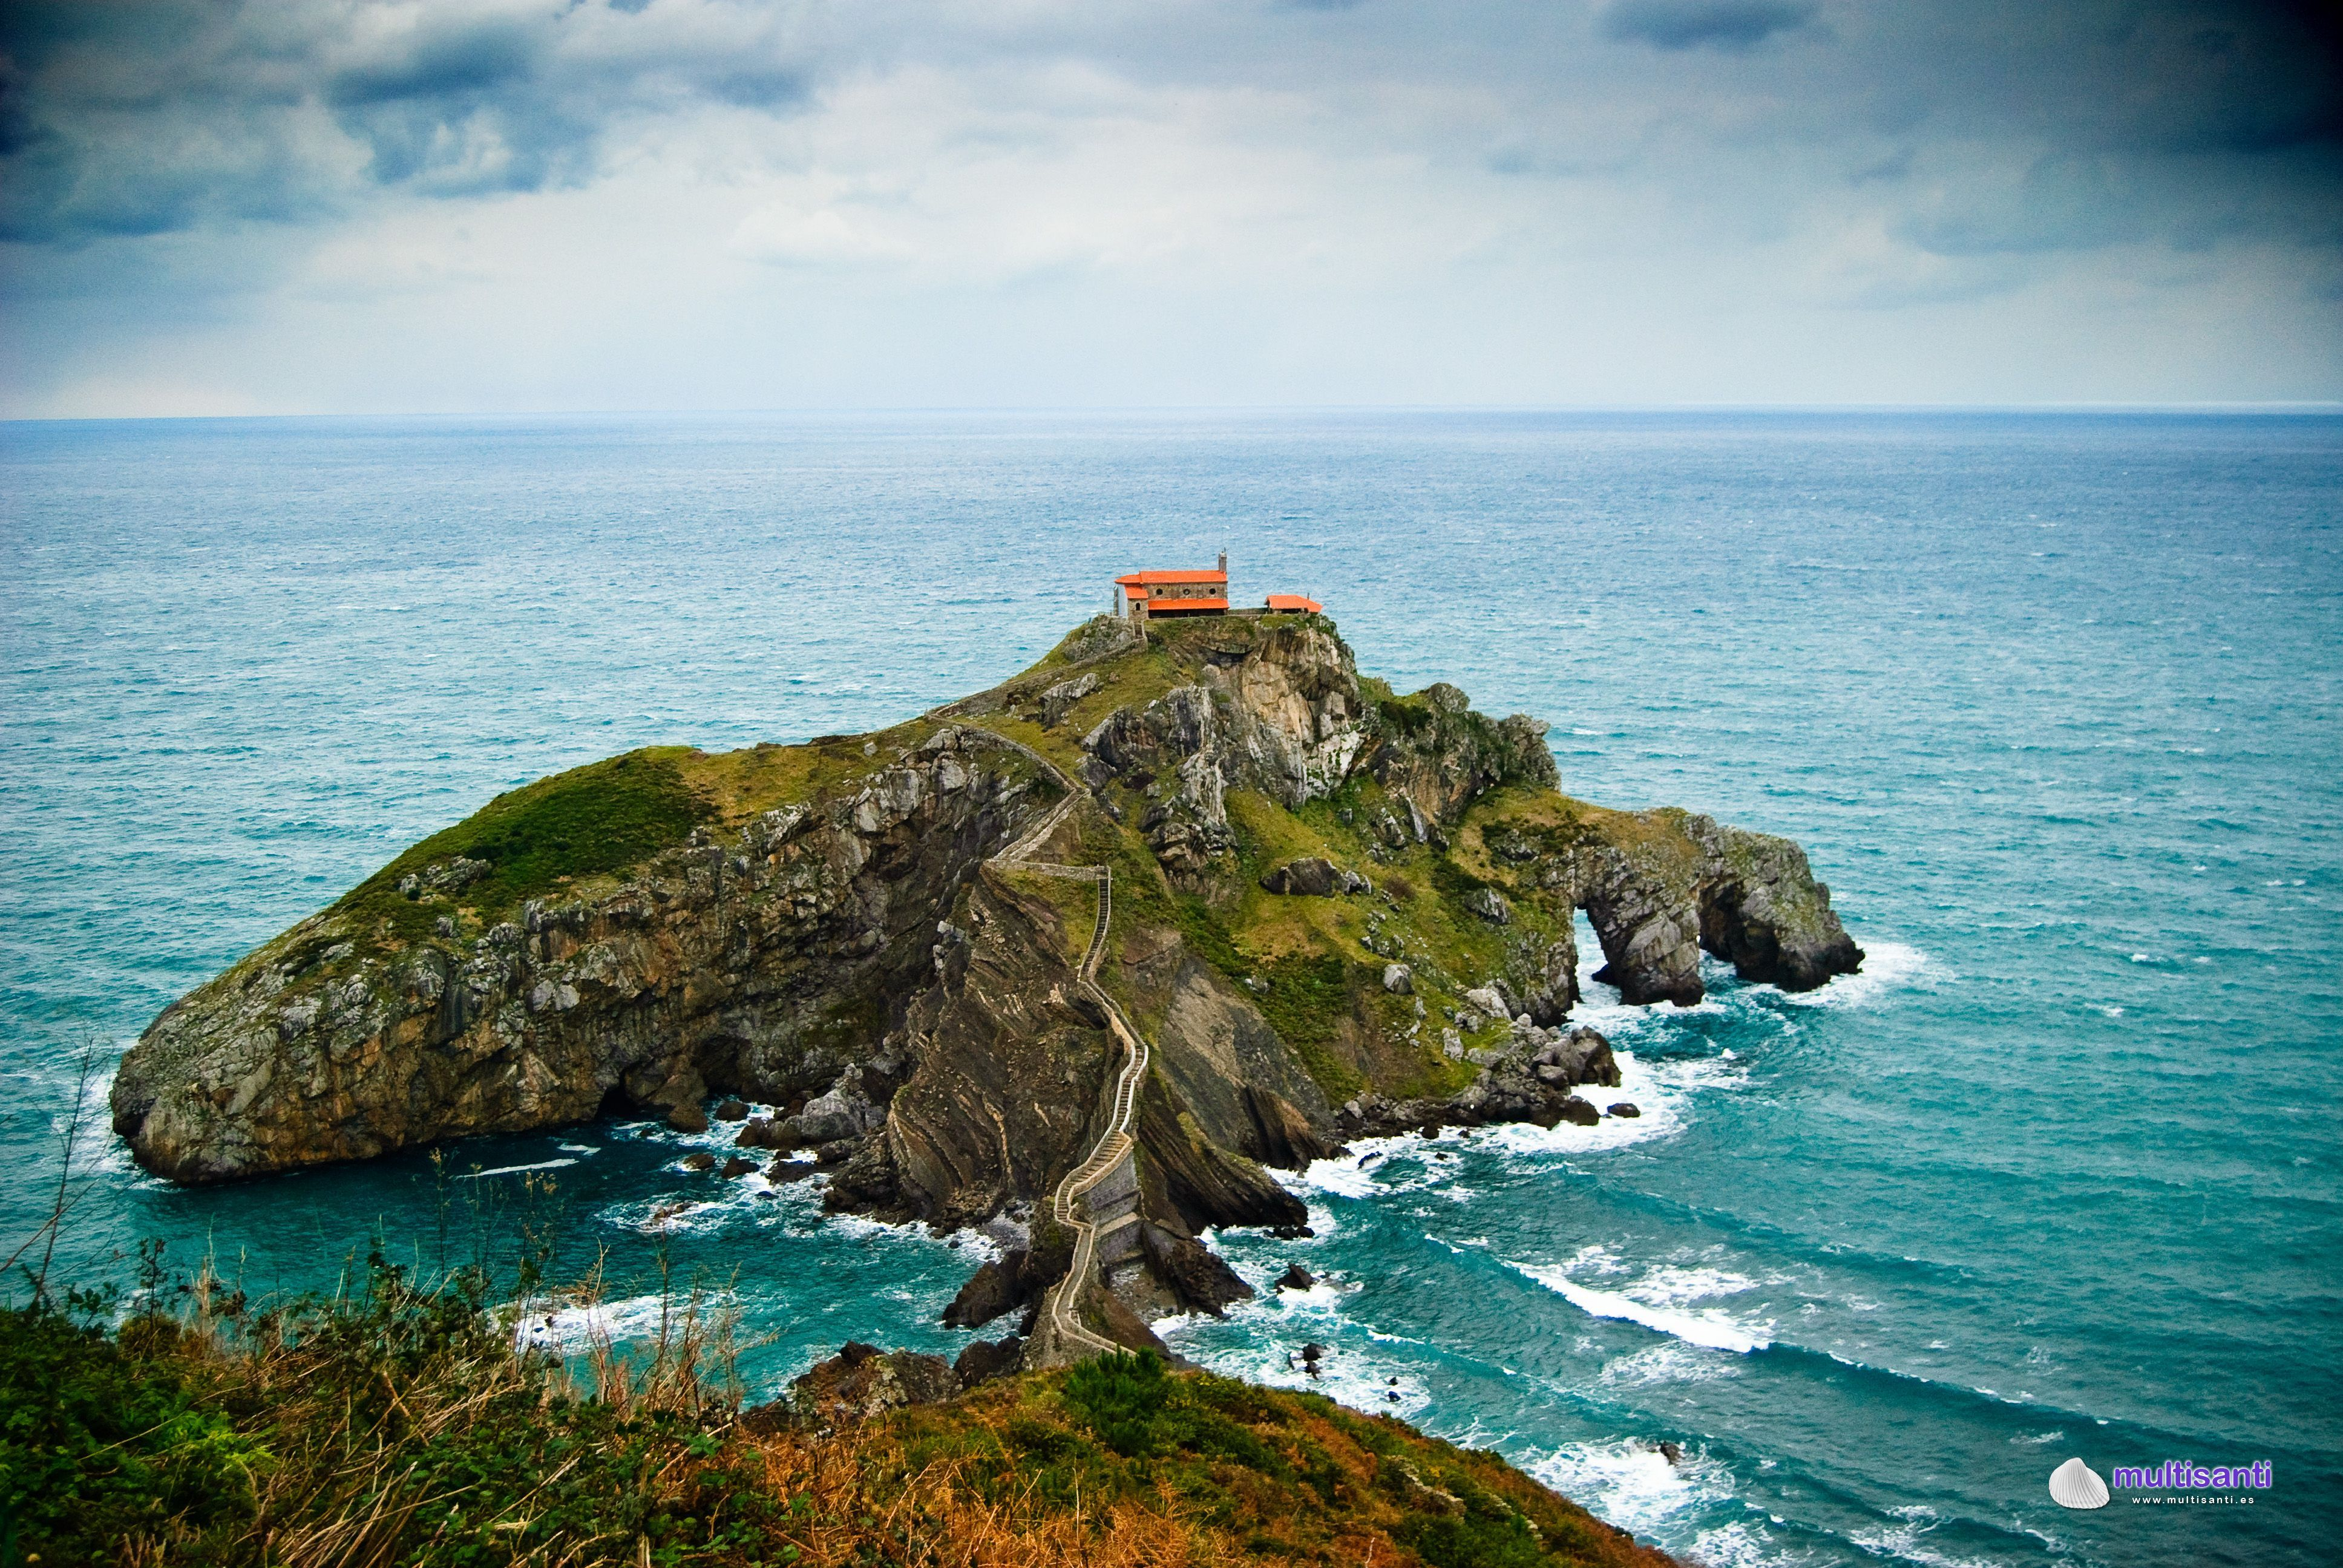 George R R Martin S Fictional Continents Of Westeros And Essos In Game Of Thrones Are So Lushly Fully Imagined Basque Country Spain San Juan De Gaztelugatxe